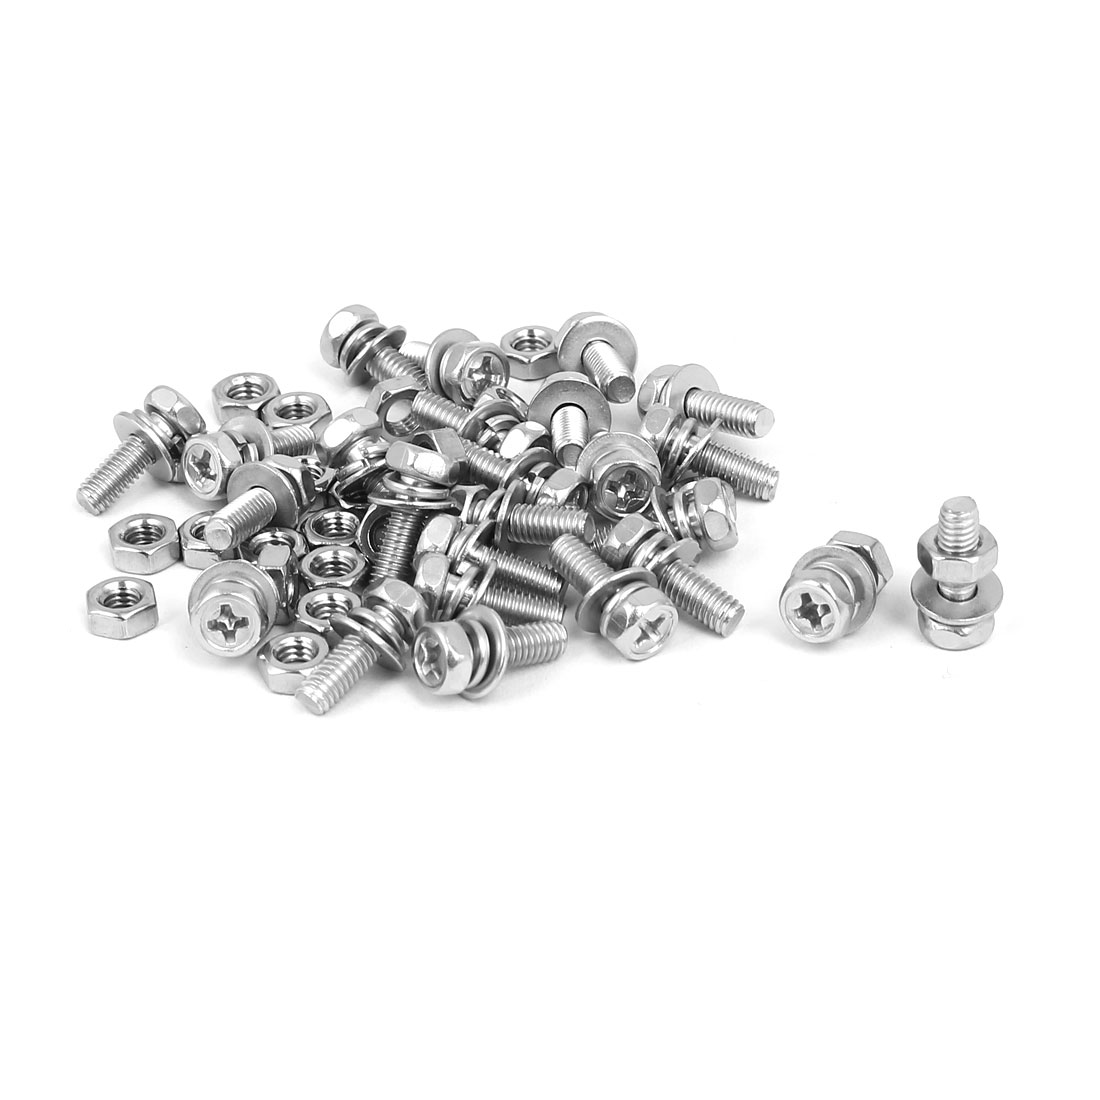 M4 x 12mm 304 Stainless Steel Phillips Hex Head Bolts Nuts w Washers 25 Sets